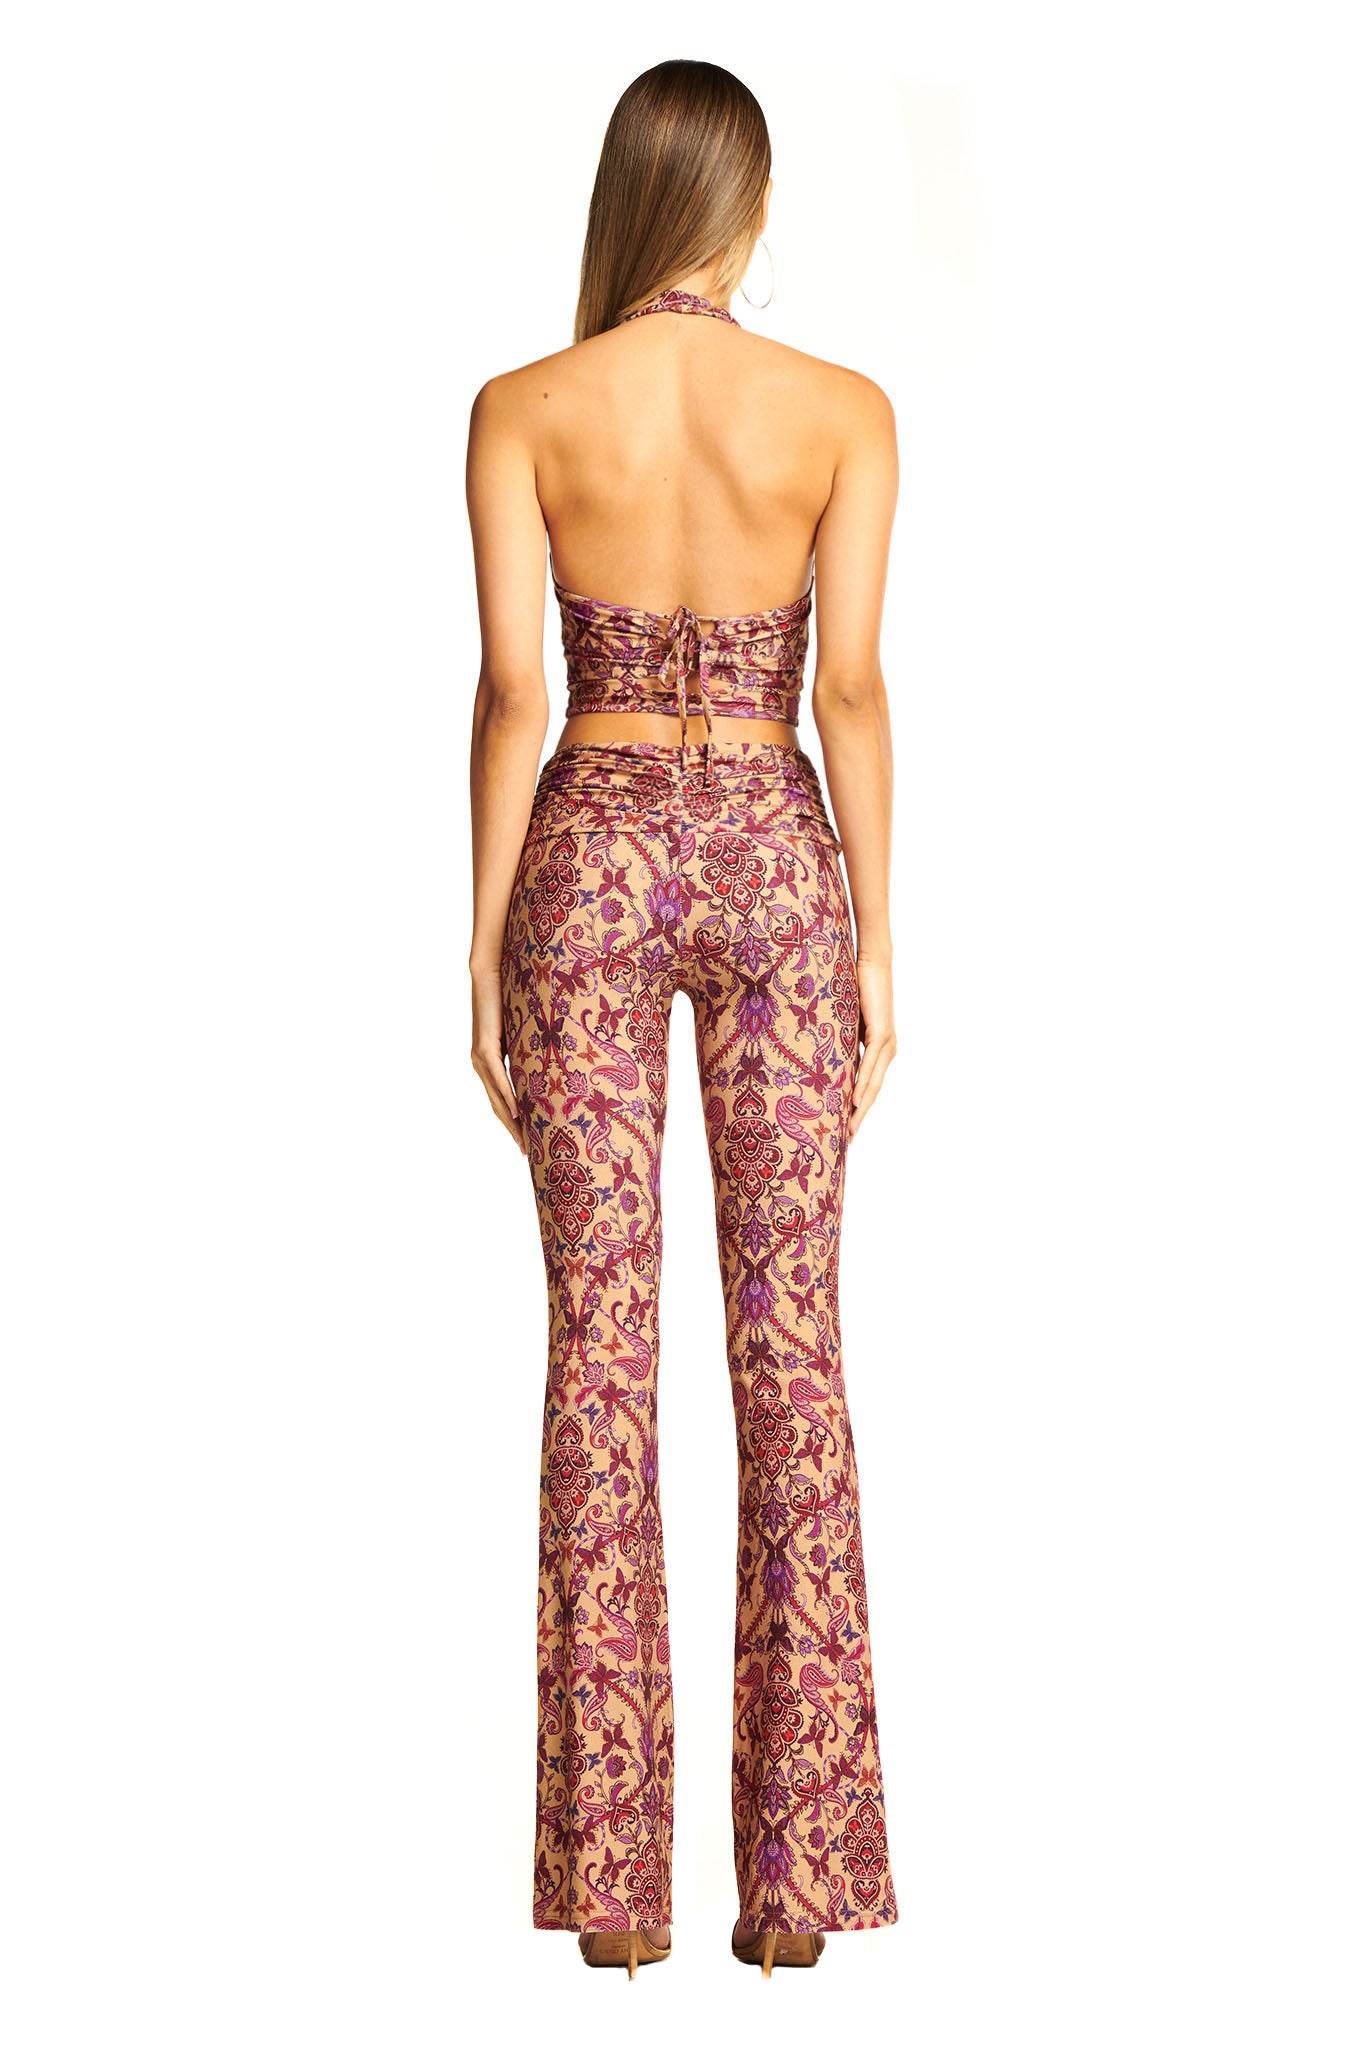 CIRCE PANT - TAN PAISLEY